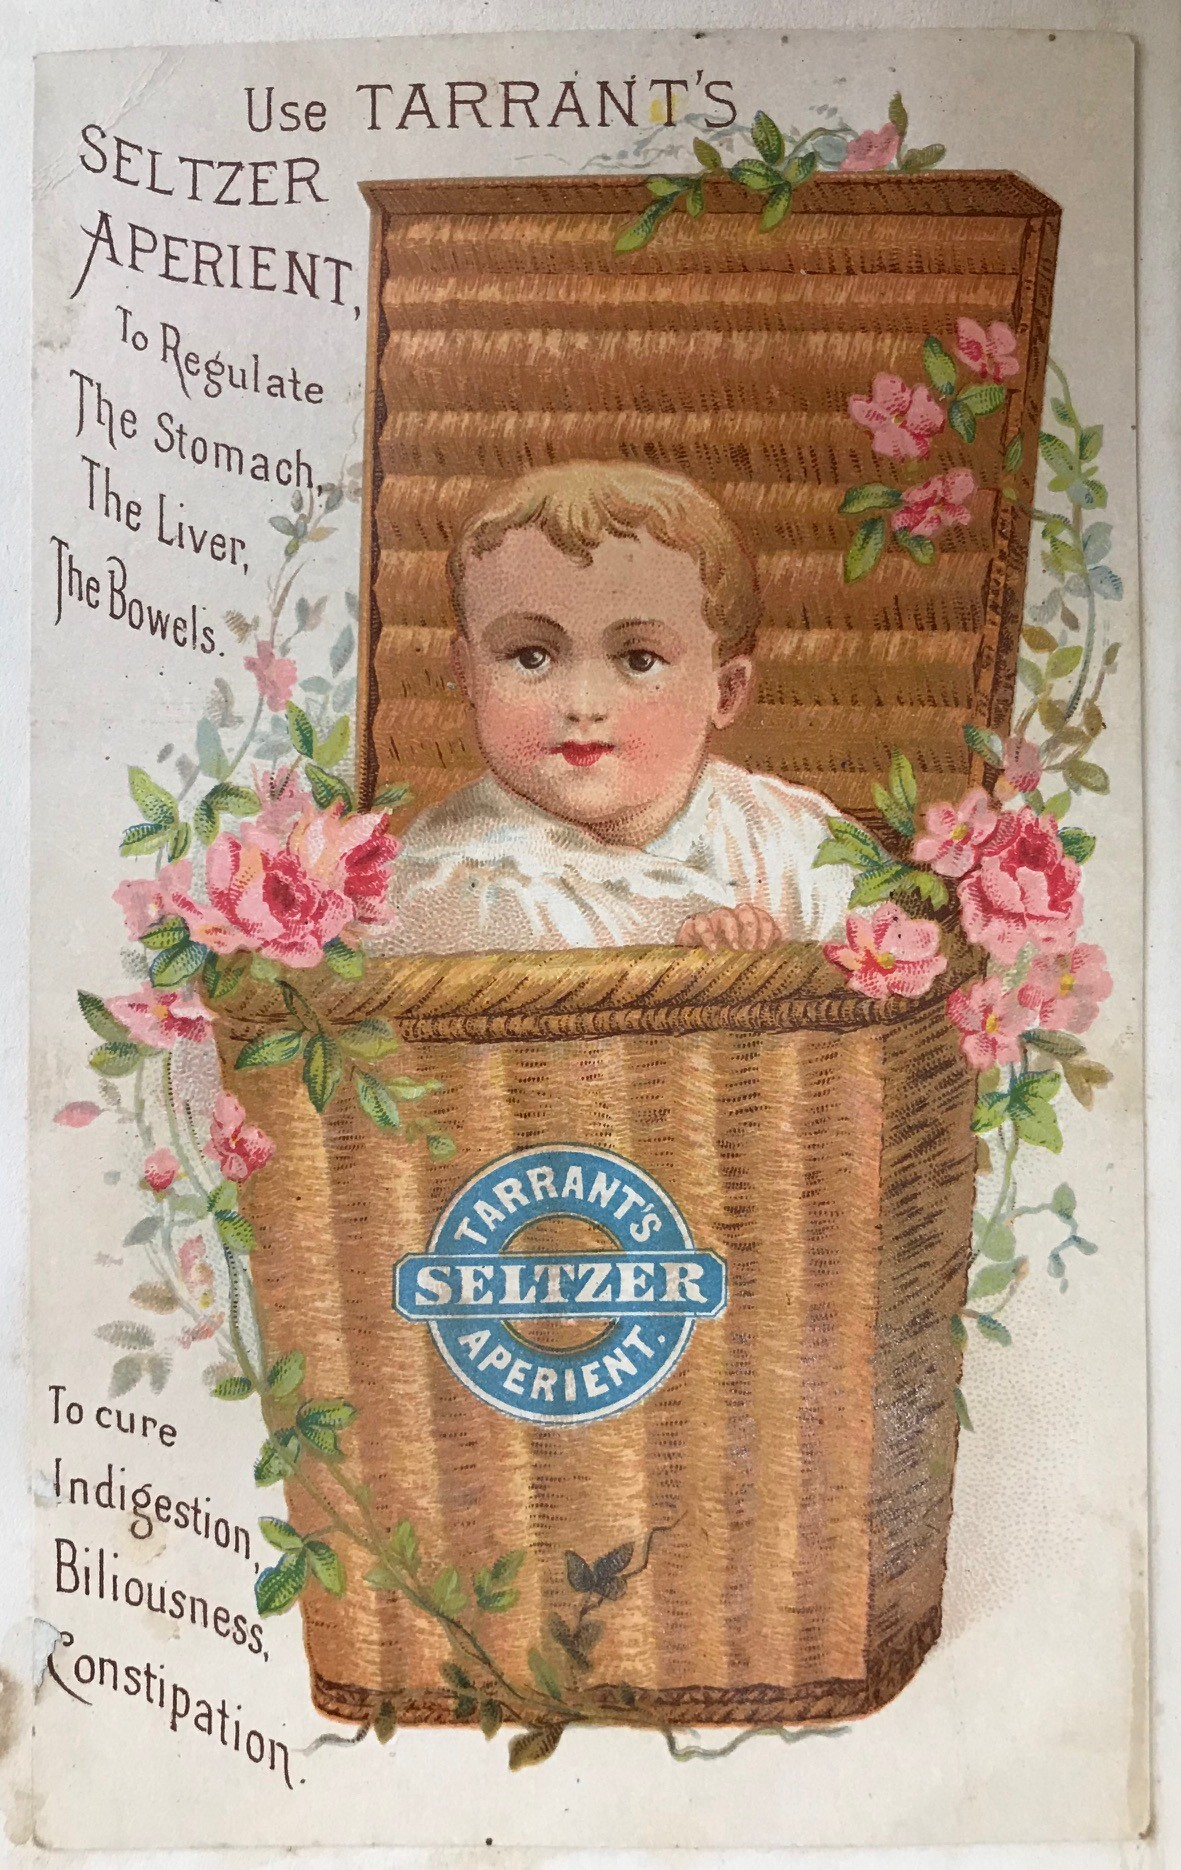 Trade card with a baby in a floral basket advertising Tarrant's Seltzer Aperient, 1880s